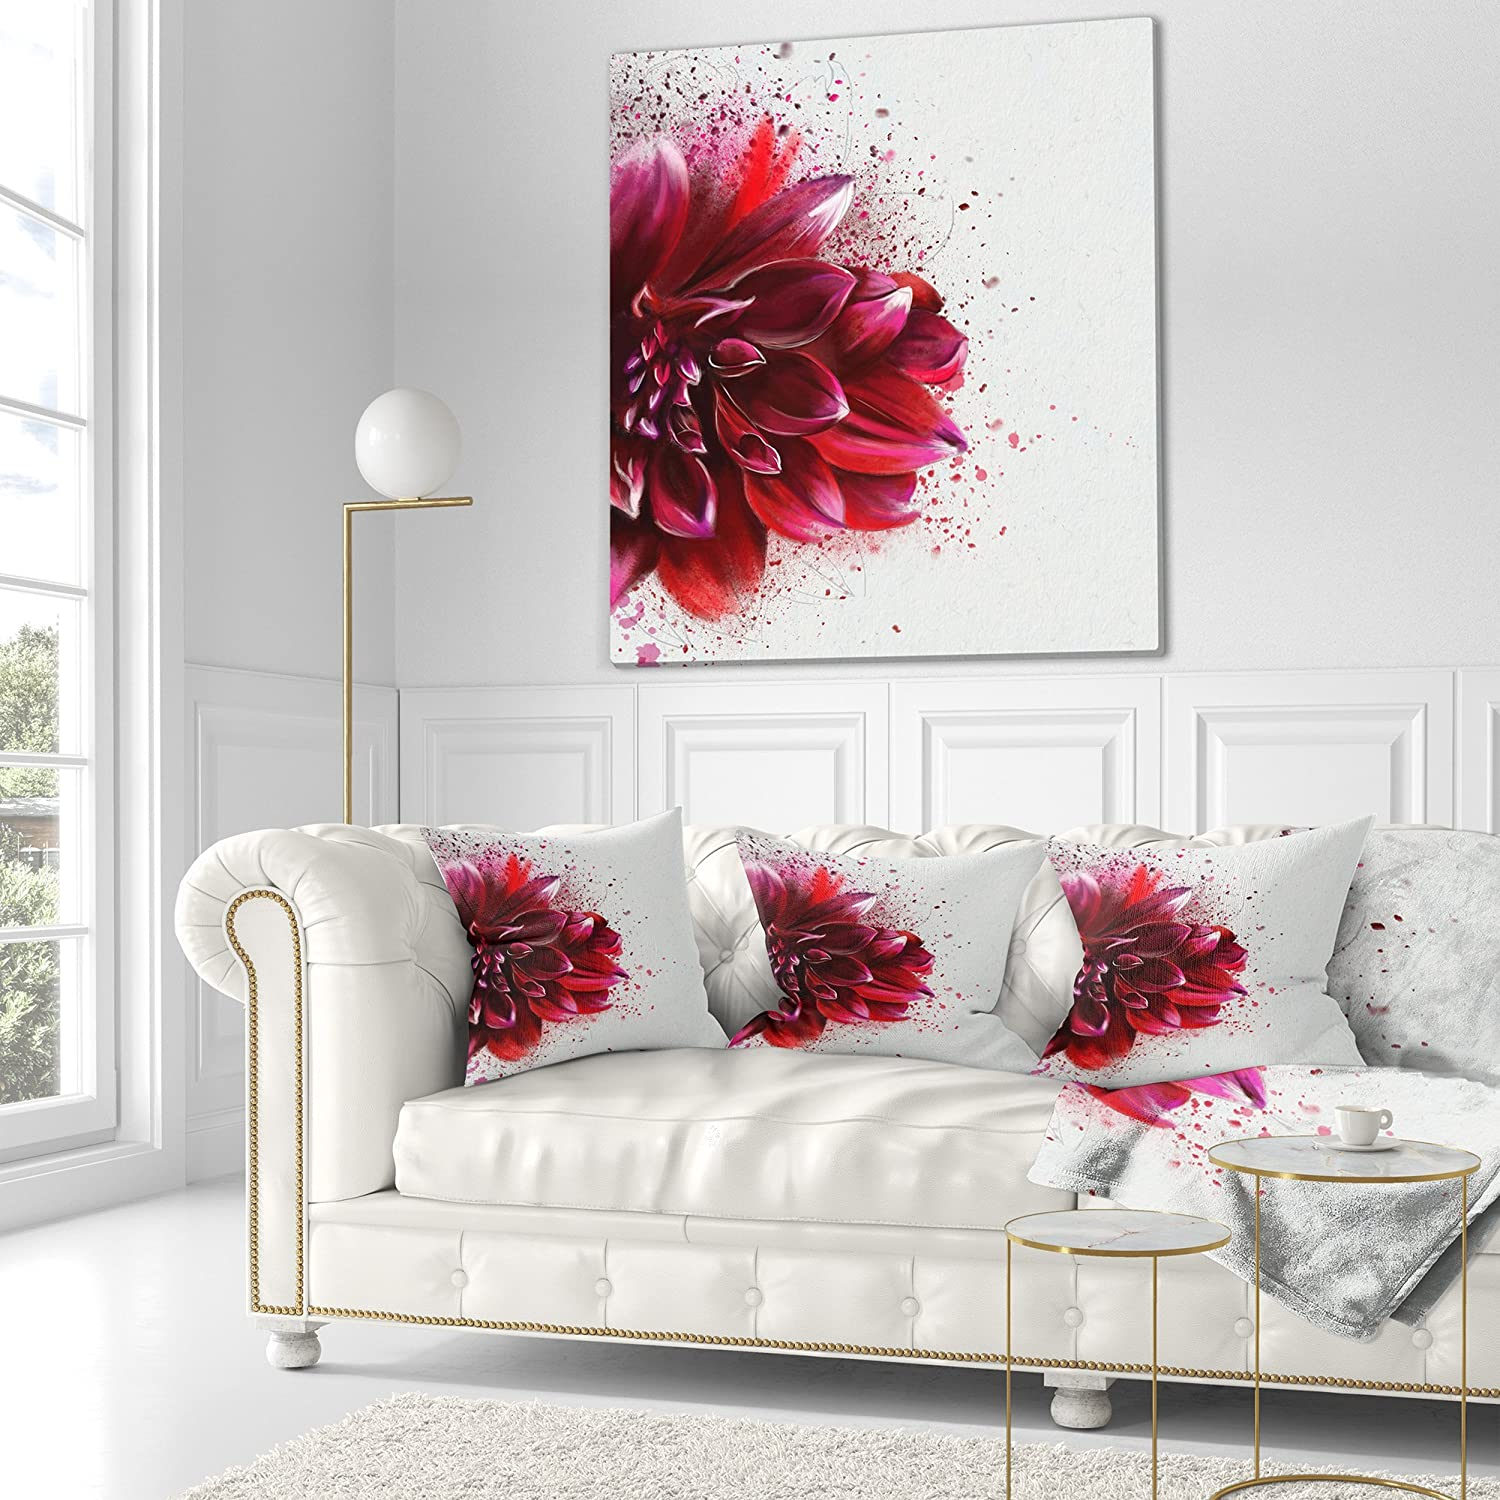 Sofa Designart CU13684-16-16 Dark Red Watercolor Rose Flower Floral Cushion Cover for Living Room Throw Pillow x 16 in Insert Printed On Both Side